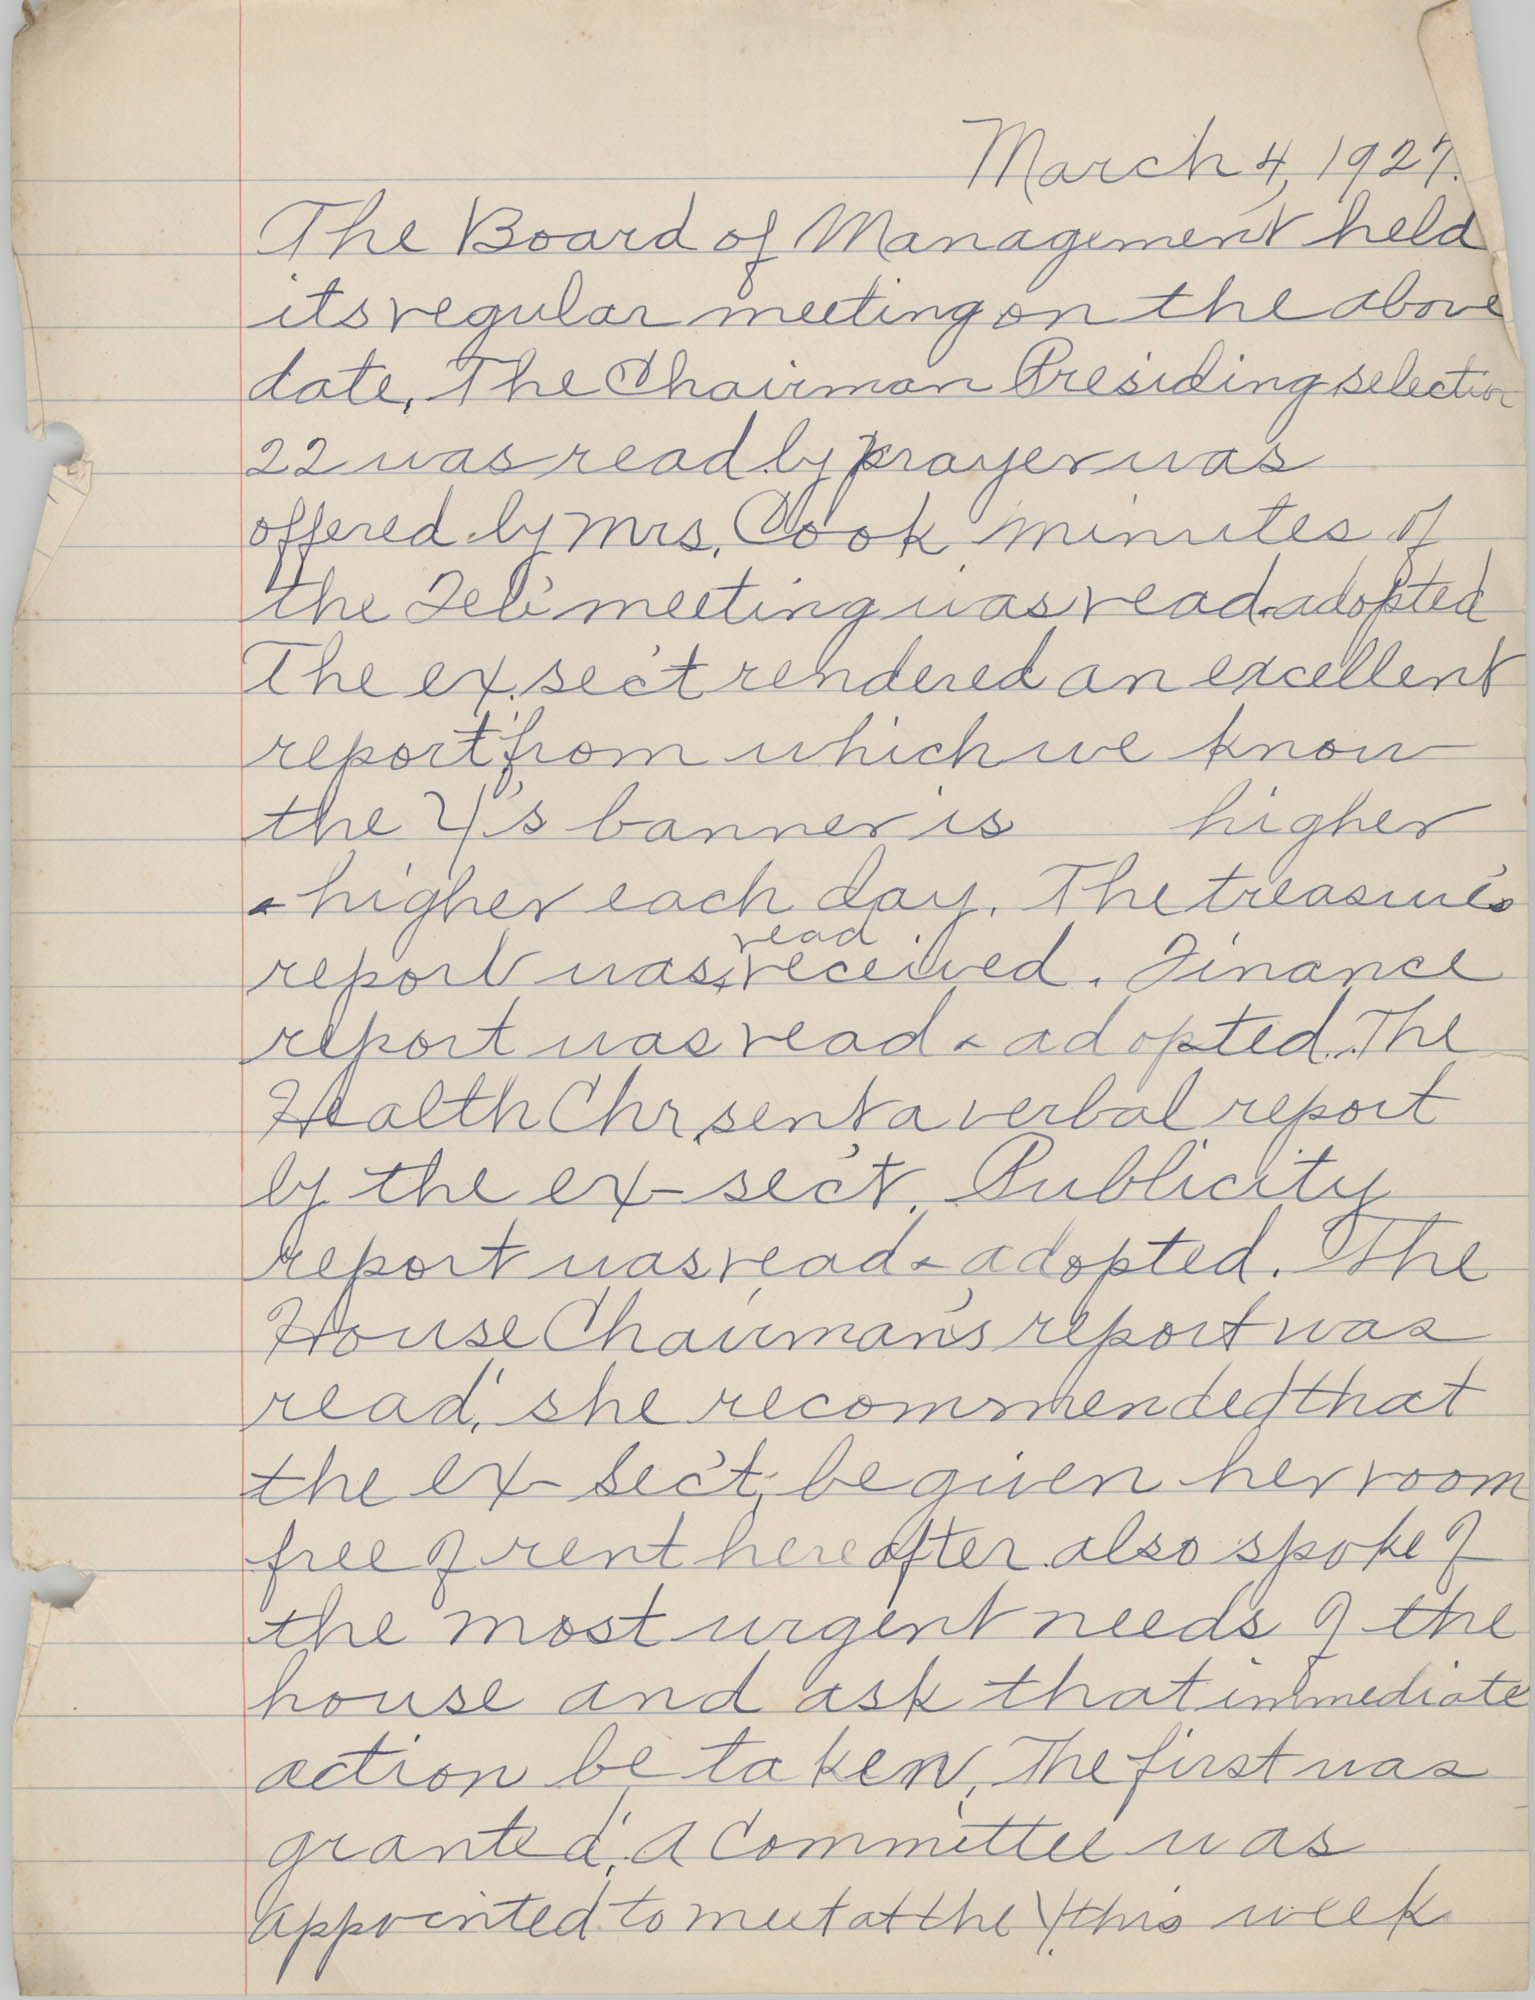 Minutes to the Board of Management, Coming Street Y.W.C.A., March 4, 1927